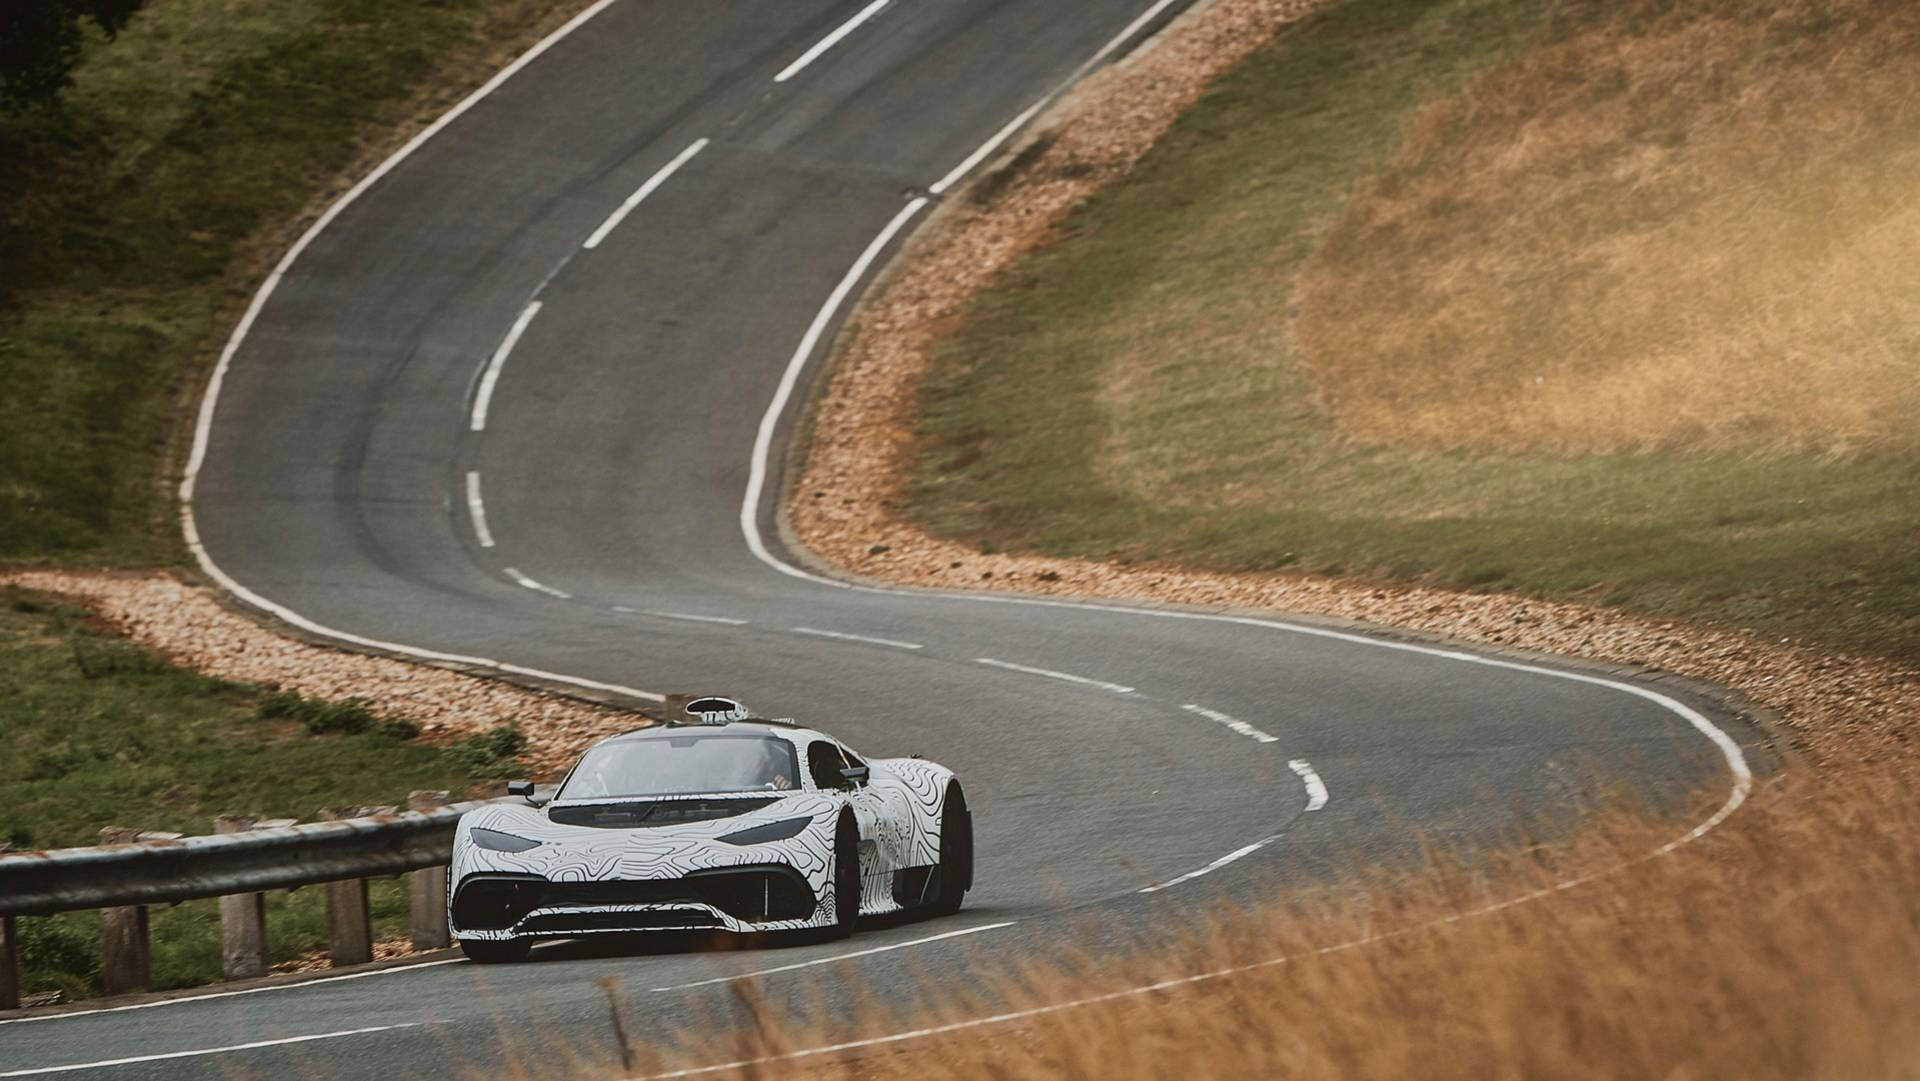 Merecdes-AMG_Project One_testing_0000